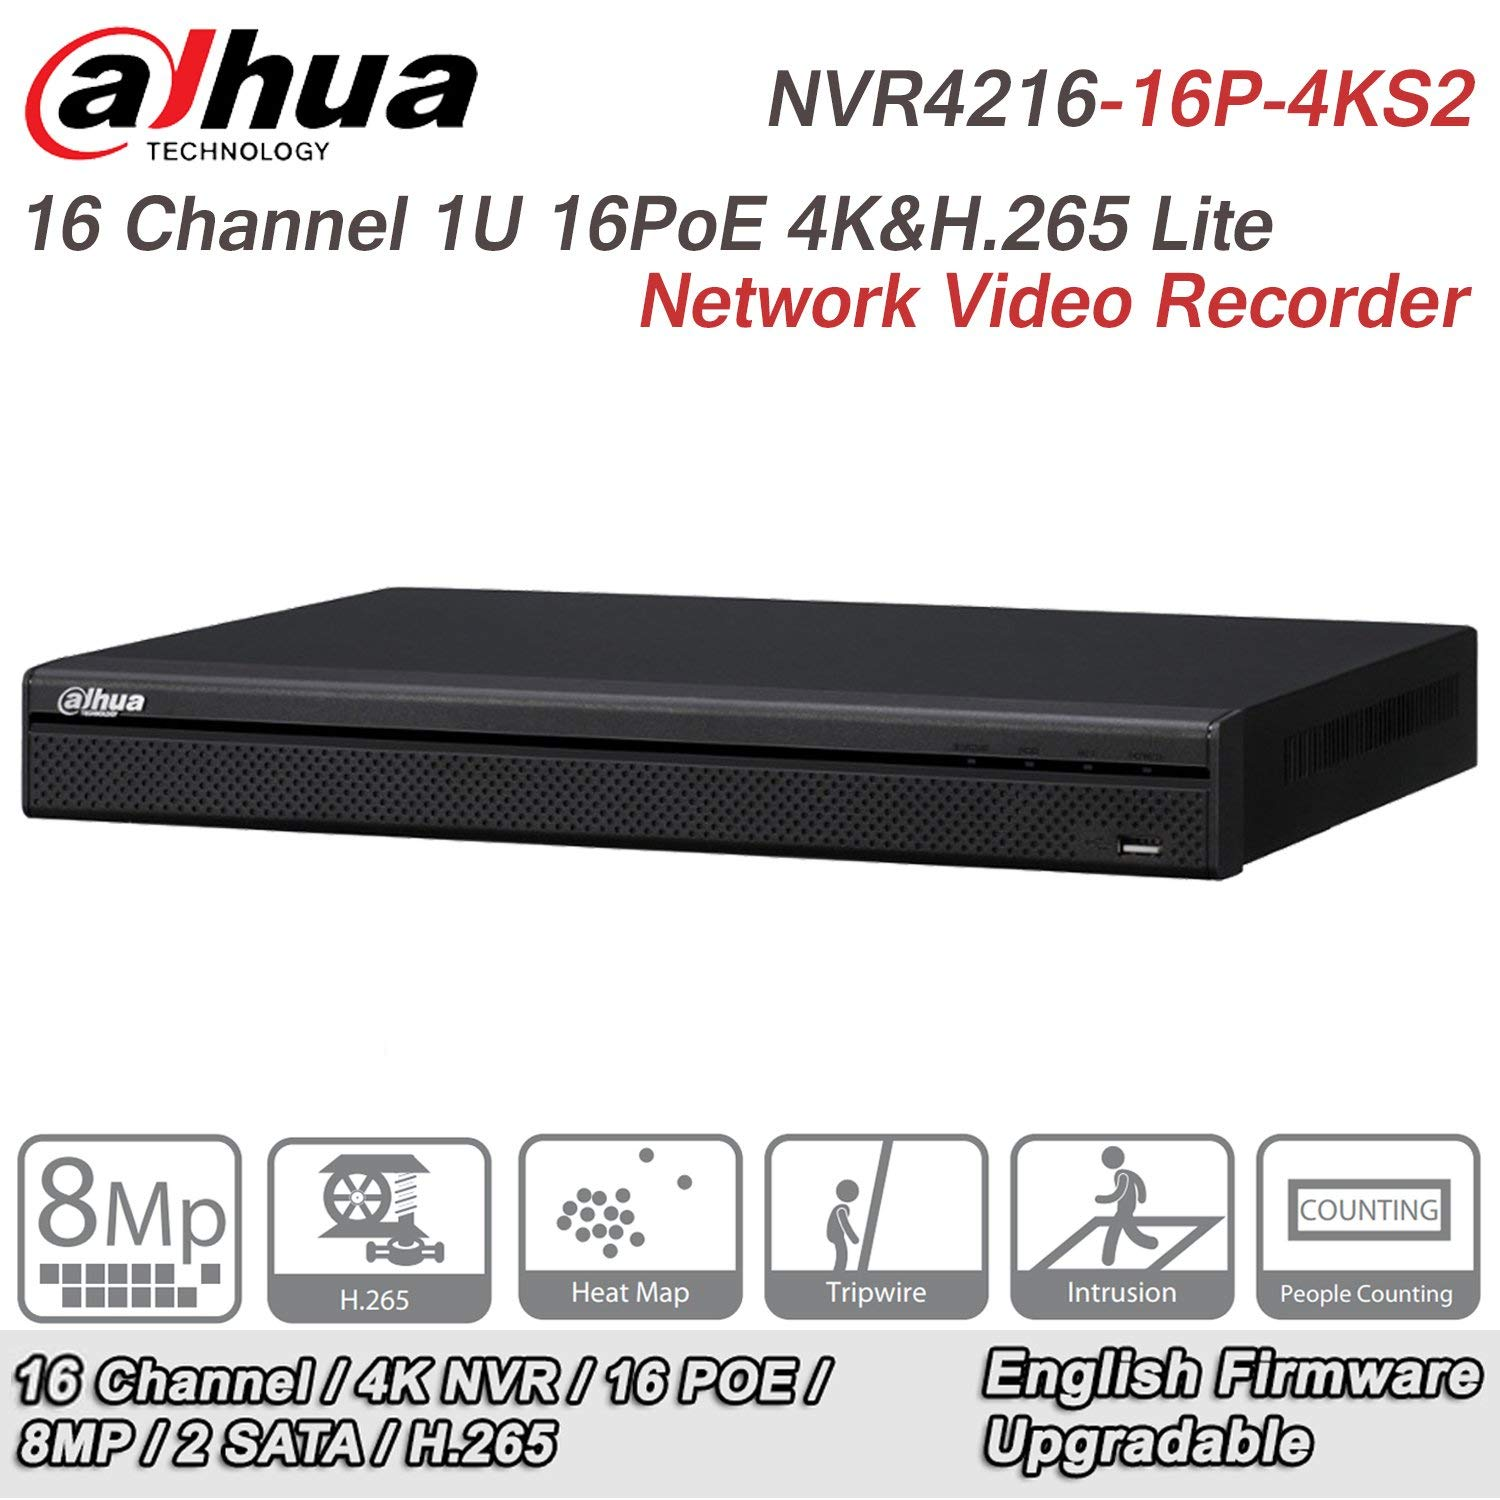 Dahua NVR4216-16P-4KS2 16 Channel 1U 16PoE 4K&H.265 Lite Network Video Recorder Original English Version(Support Firmware upgrade) by HD-IPC